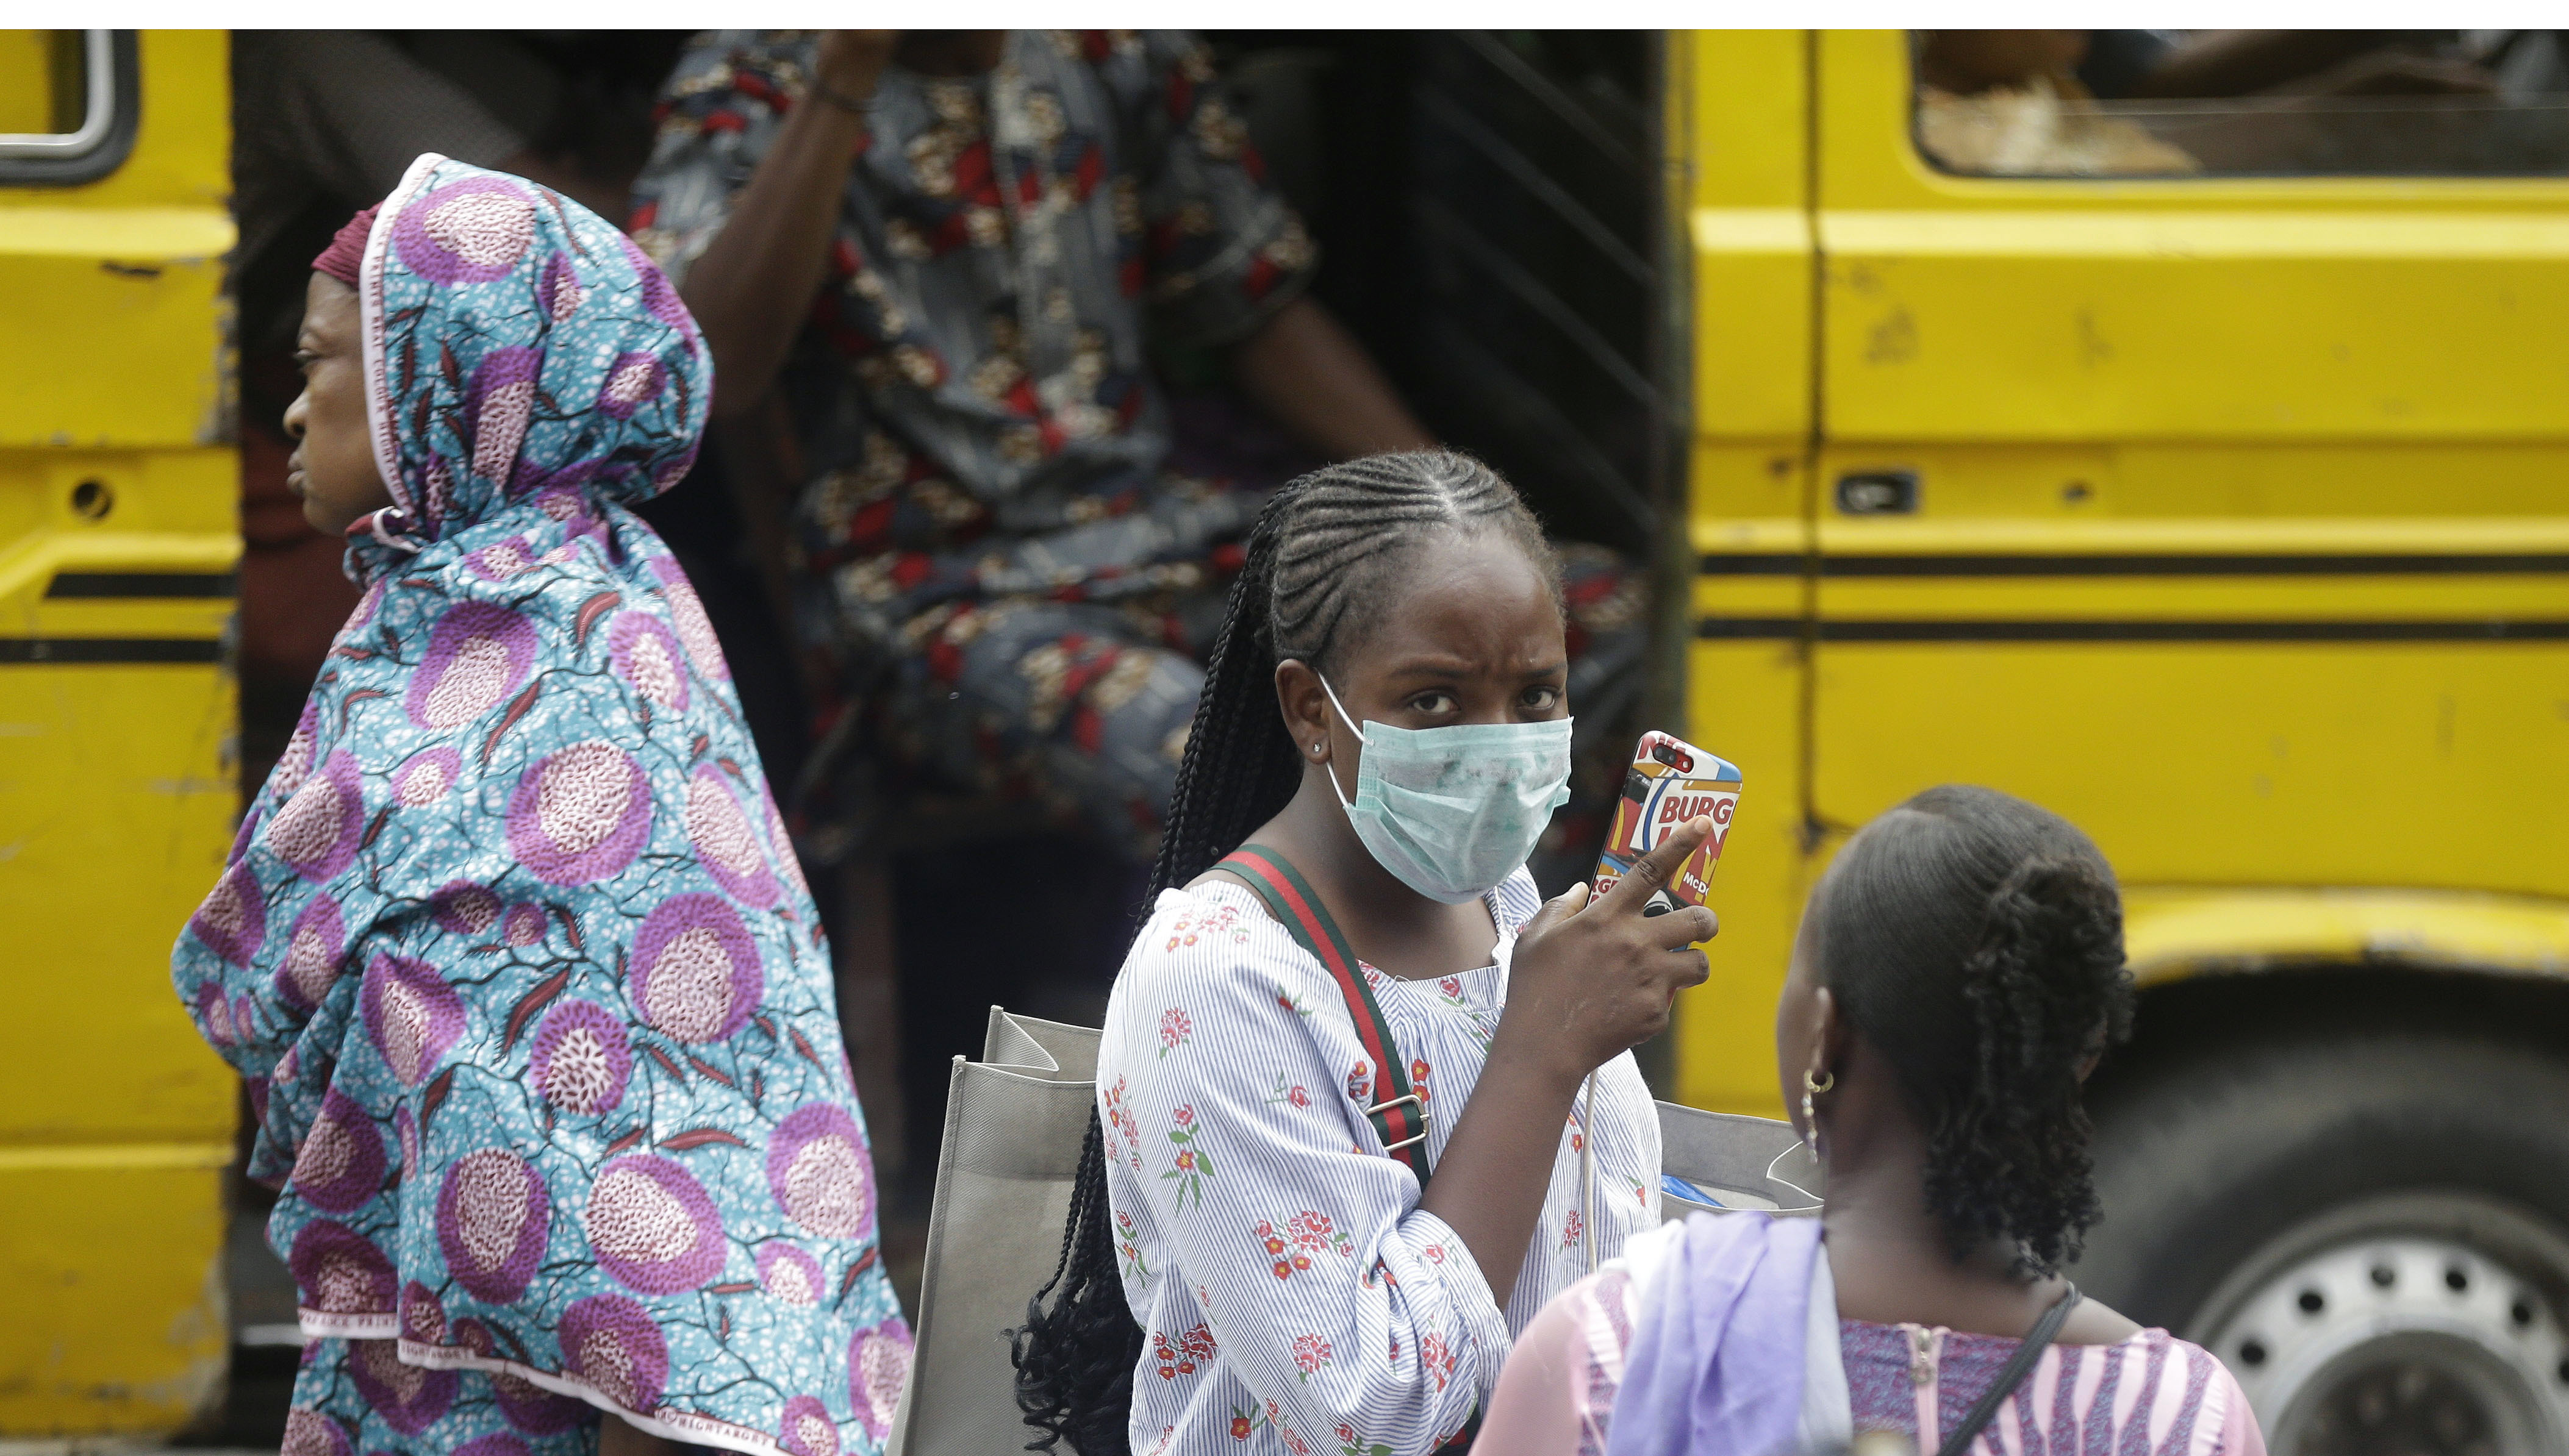 A woman wearing a face mask walks nearby the Central Mosque in Lagos, Nigeria on March 20, 2020.